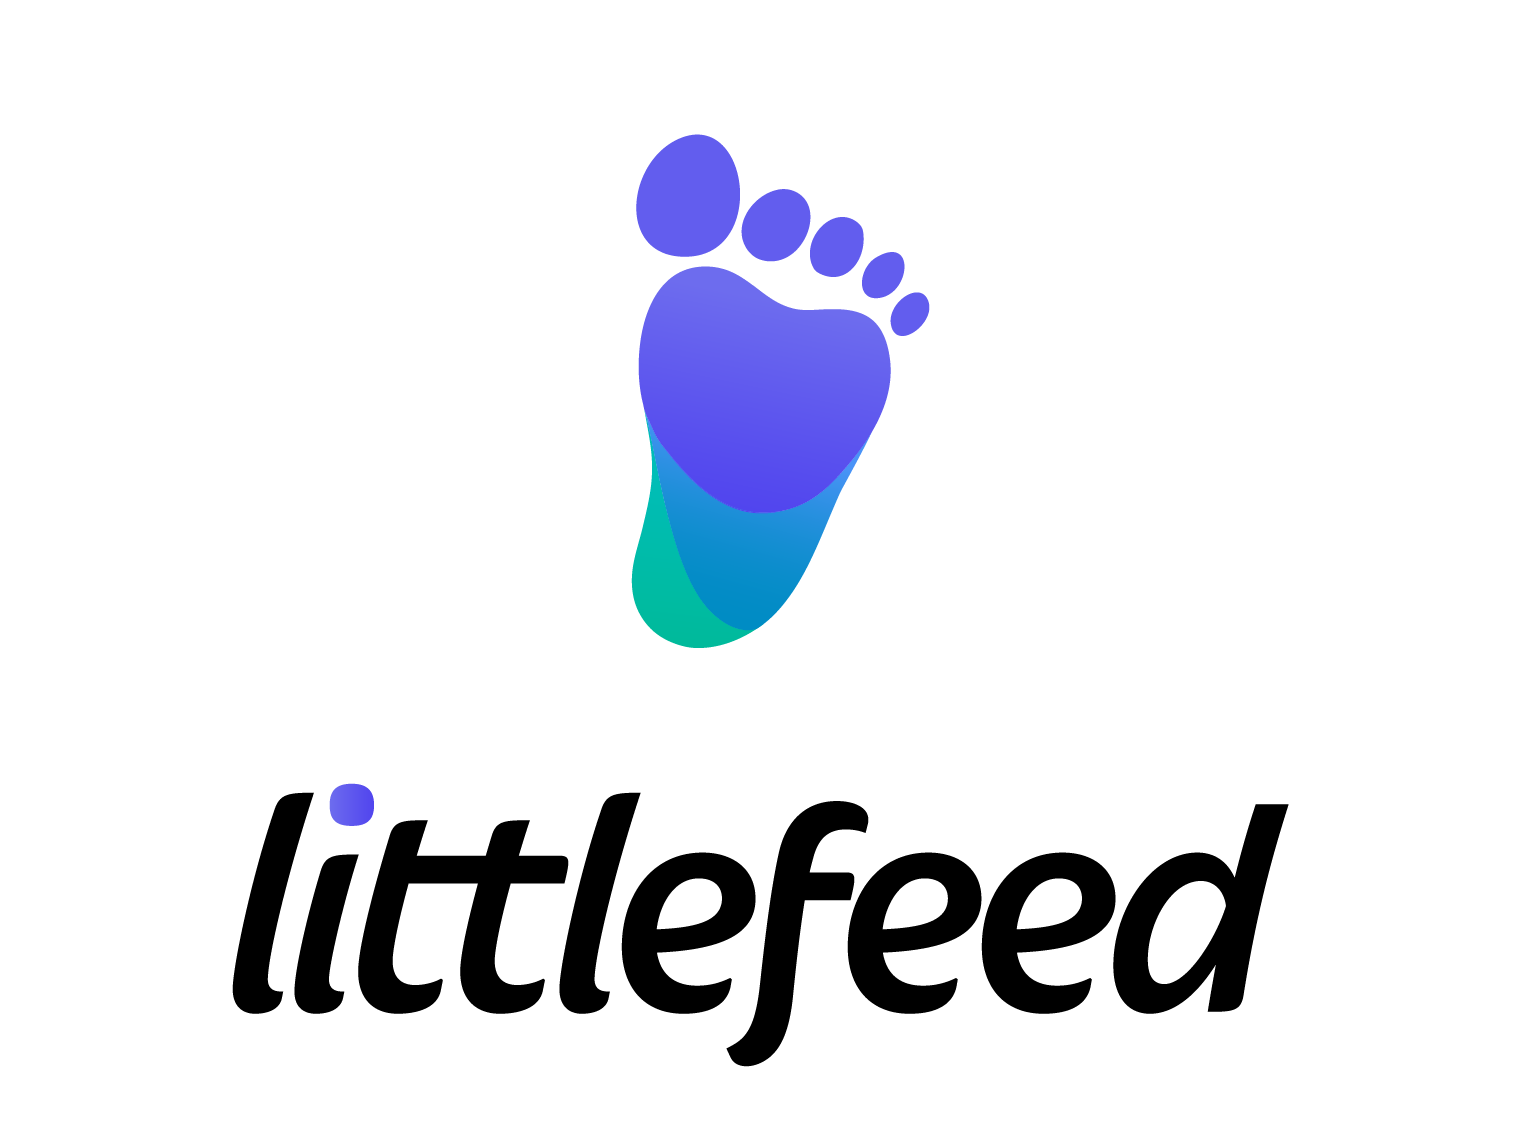 littlefeed-logo-main@2x.png